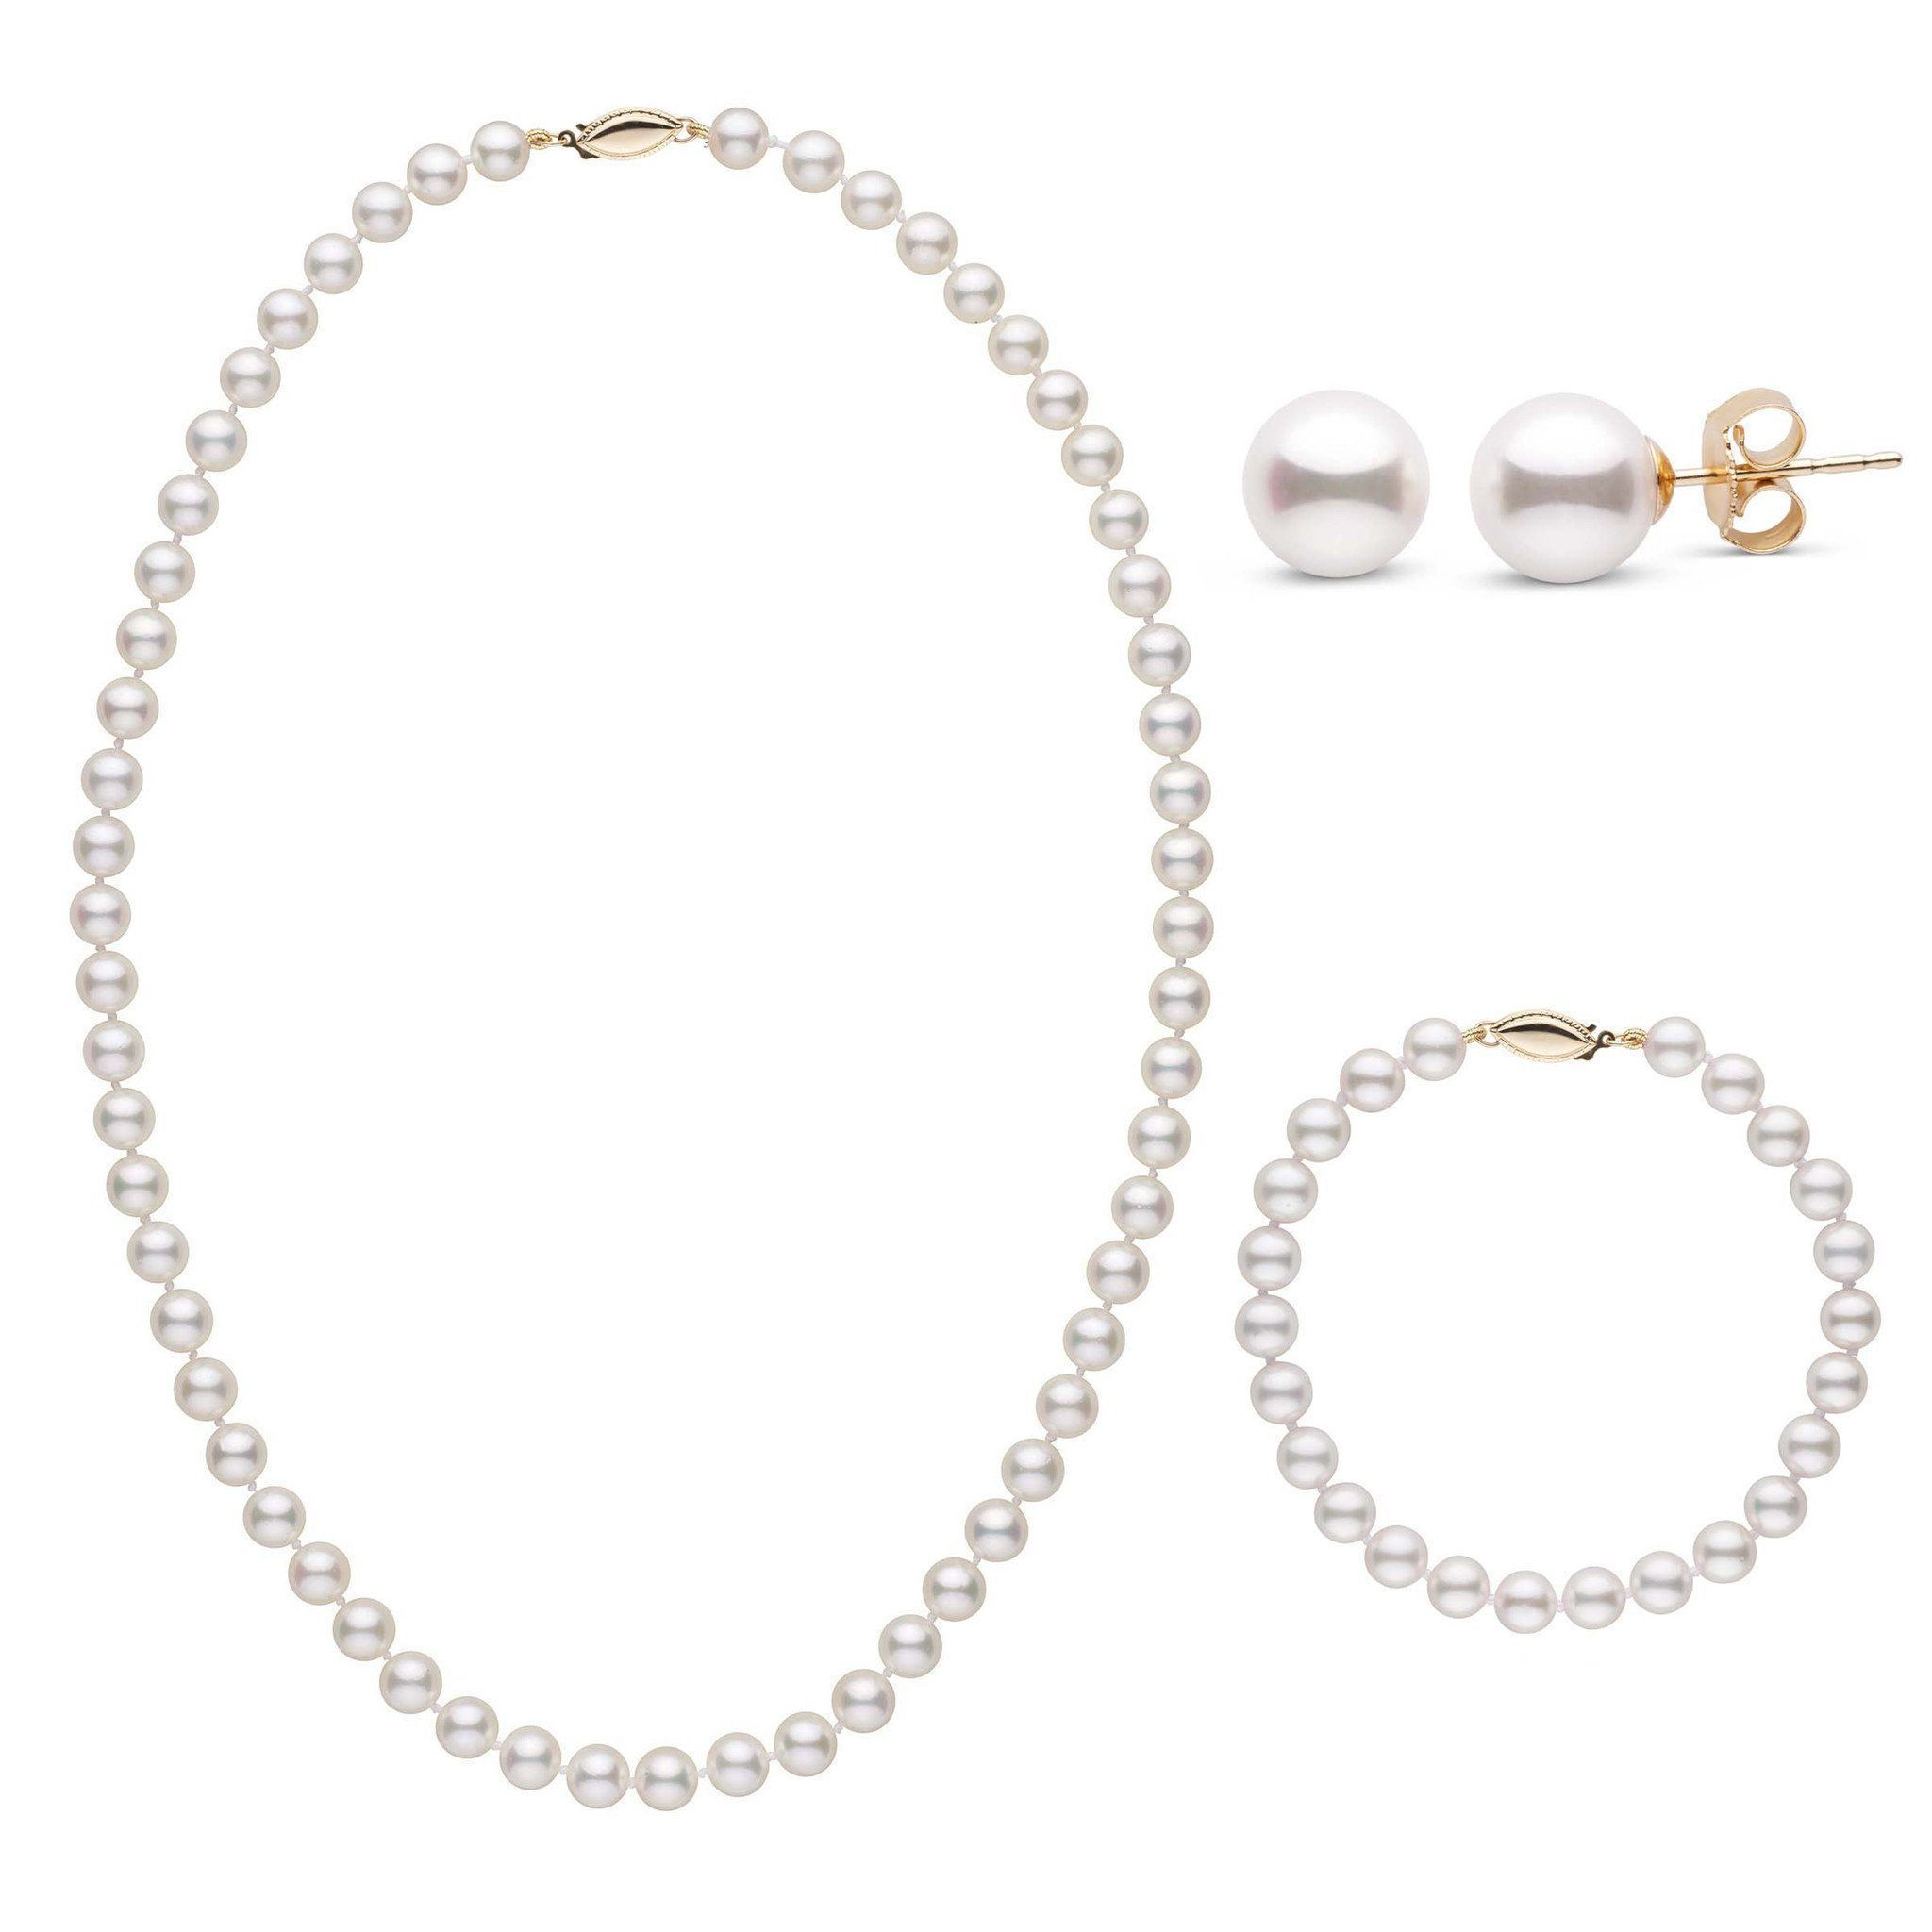 18 Inch 3 Piece Set of 6.5-7.0 mm AA+ White Akoya Pearls